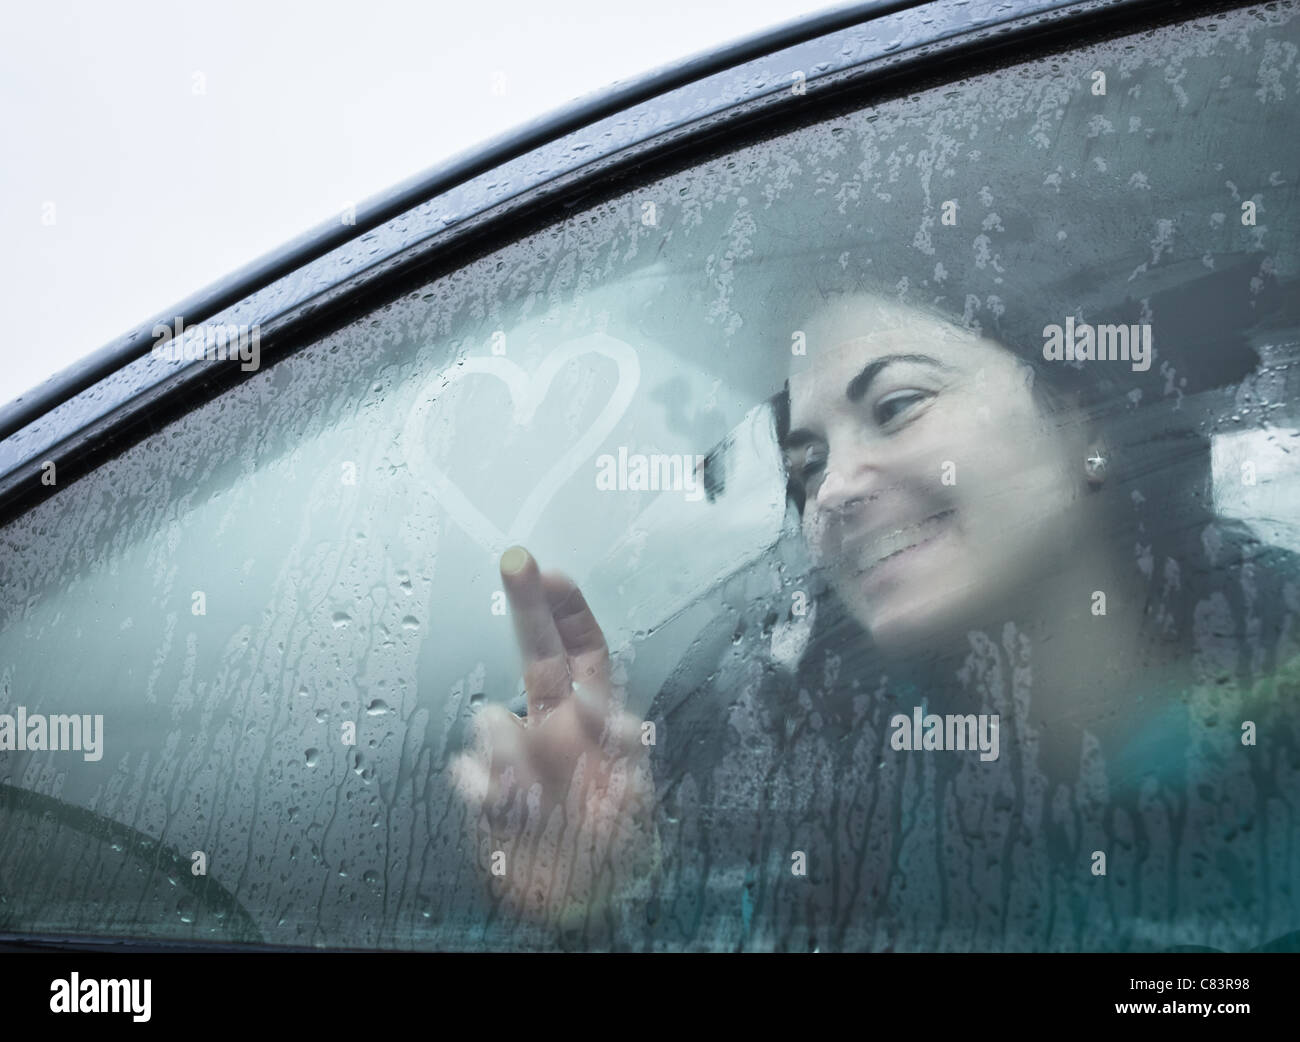 Teenage girl drawing on wet car window Stock Photo